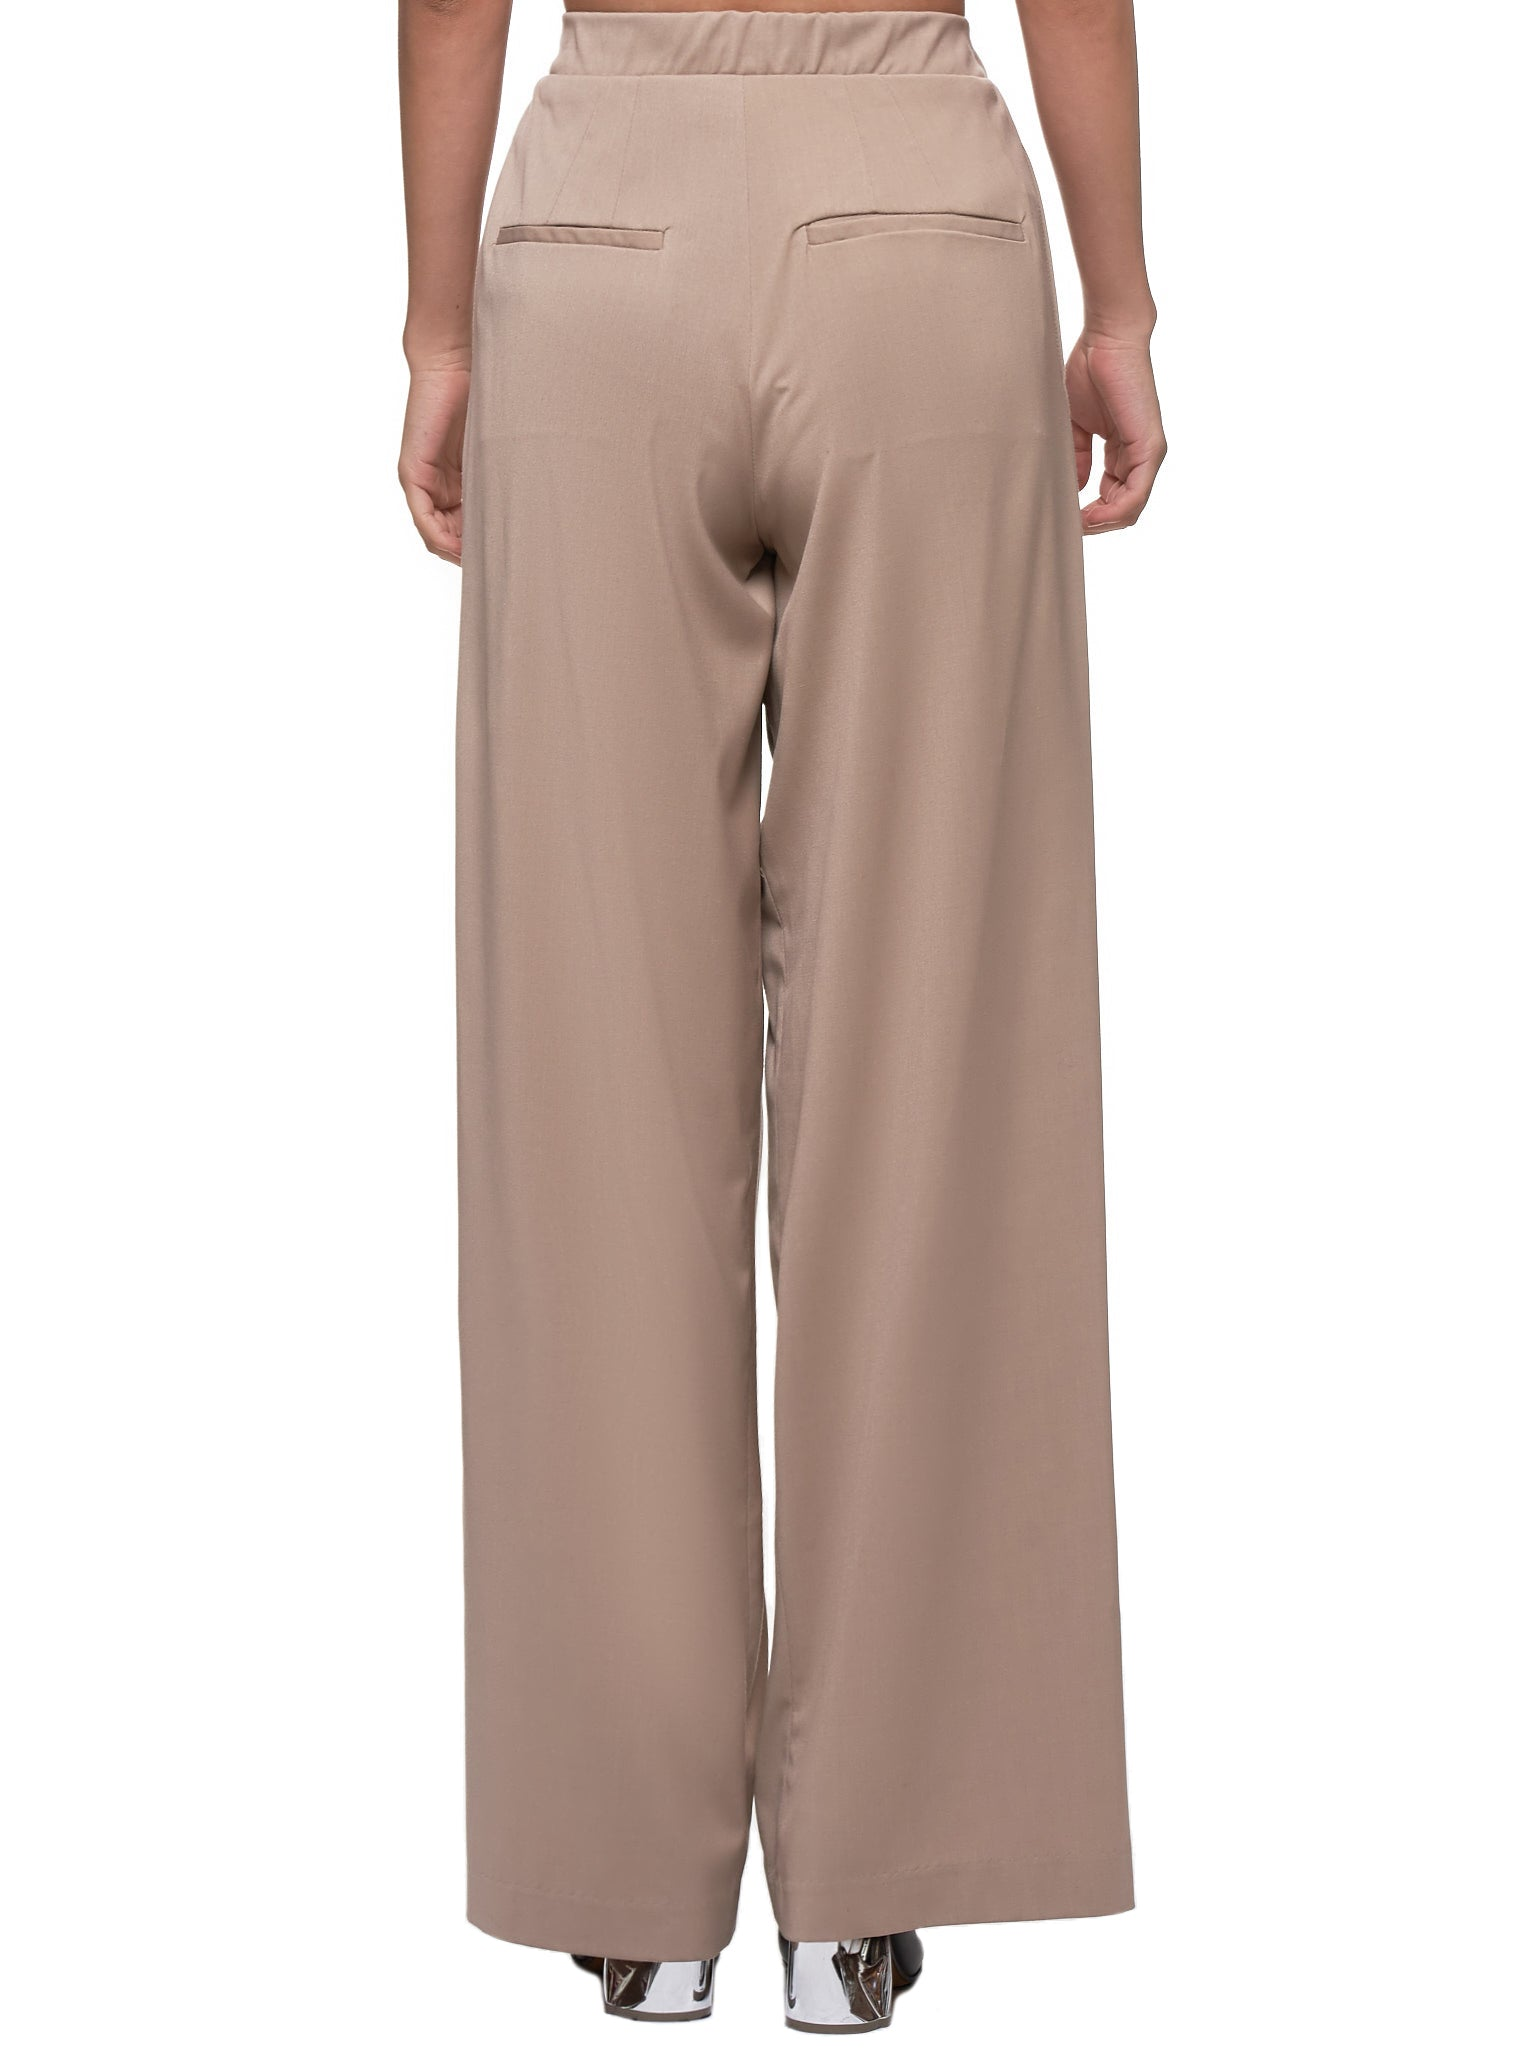 Casual Trousers (49-BEIGE)